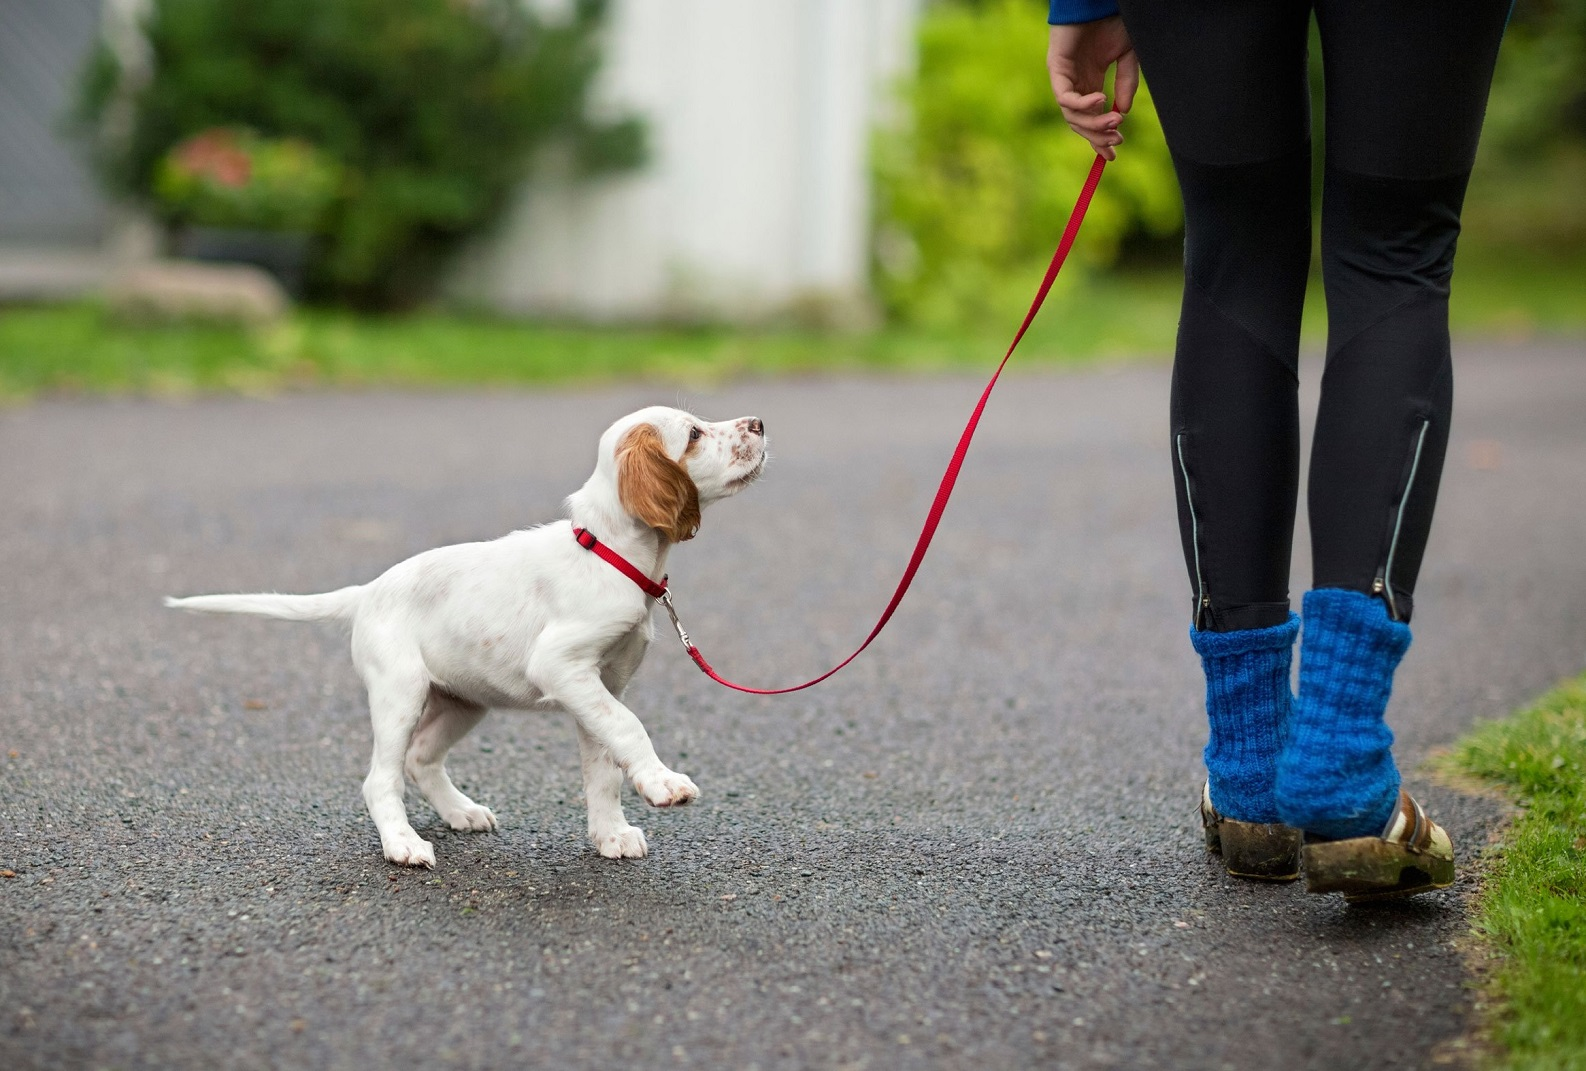 How To Train A Puppy To Walk On A Leash Without Pulling 1 Zdj.